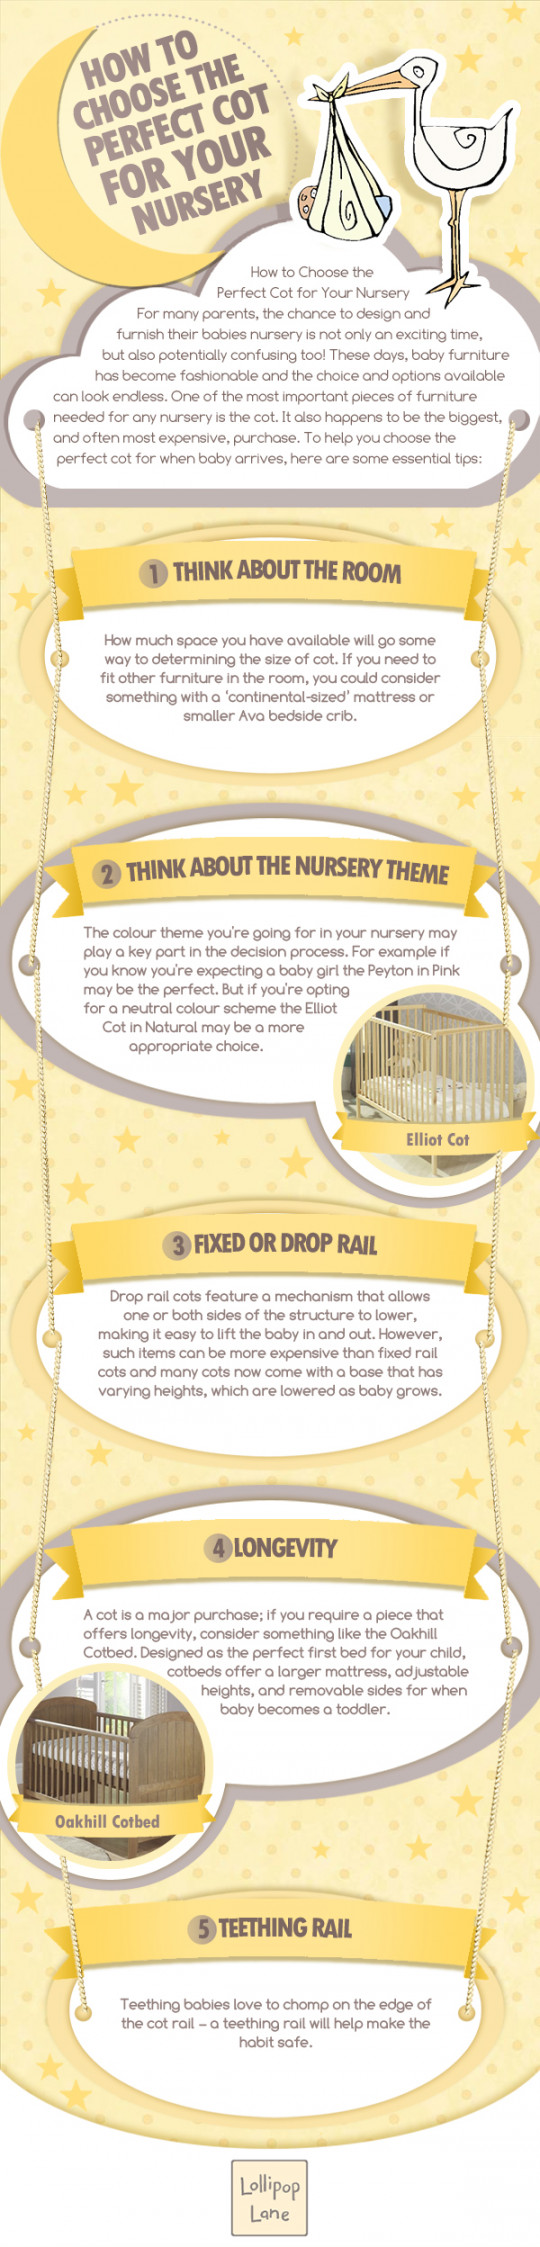 How To Choose The Perfect Cot For Your Nursery